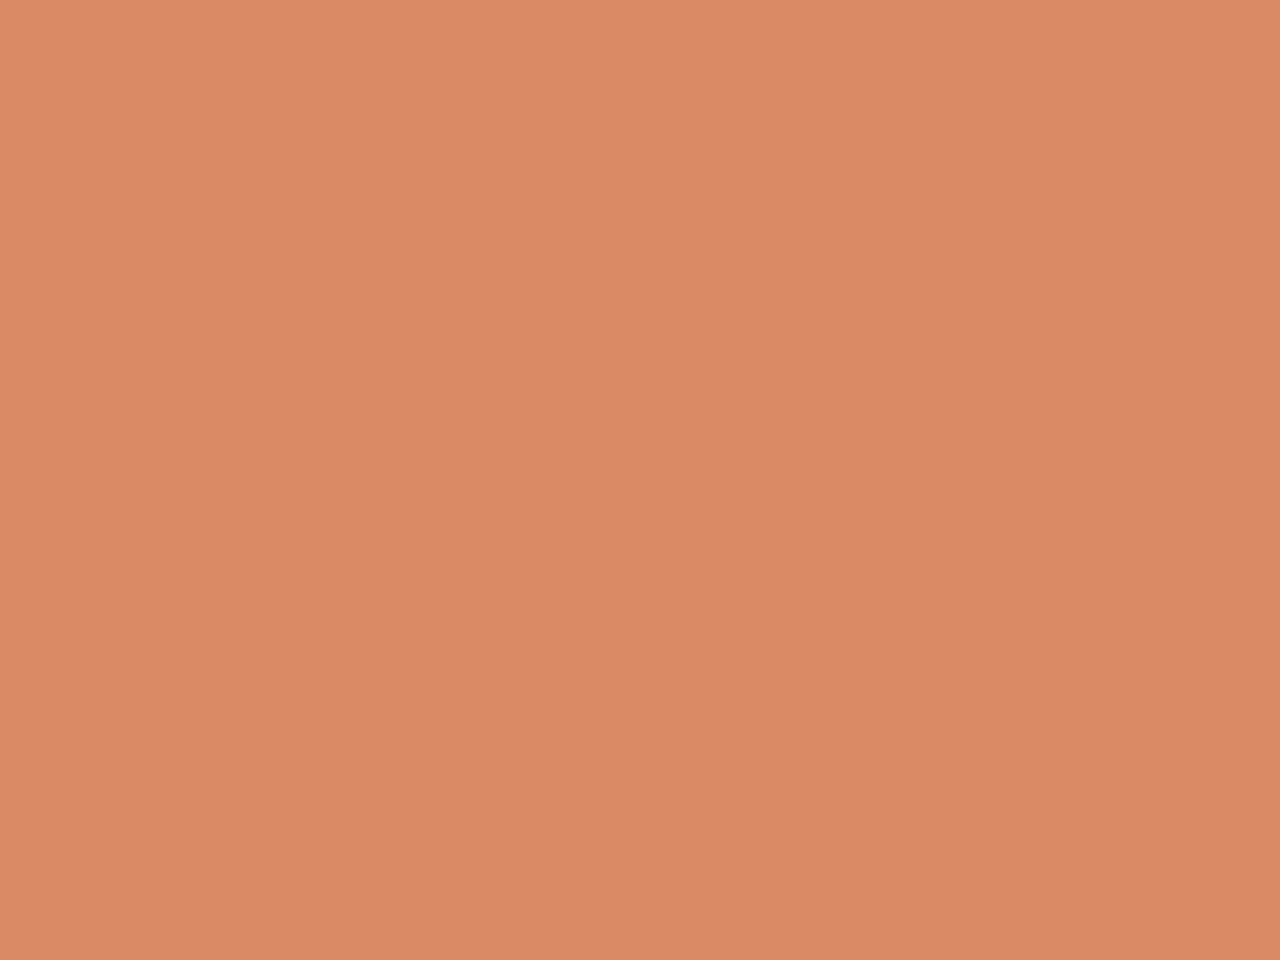 1280x960 Copper Crayola Solid Color Background